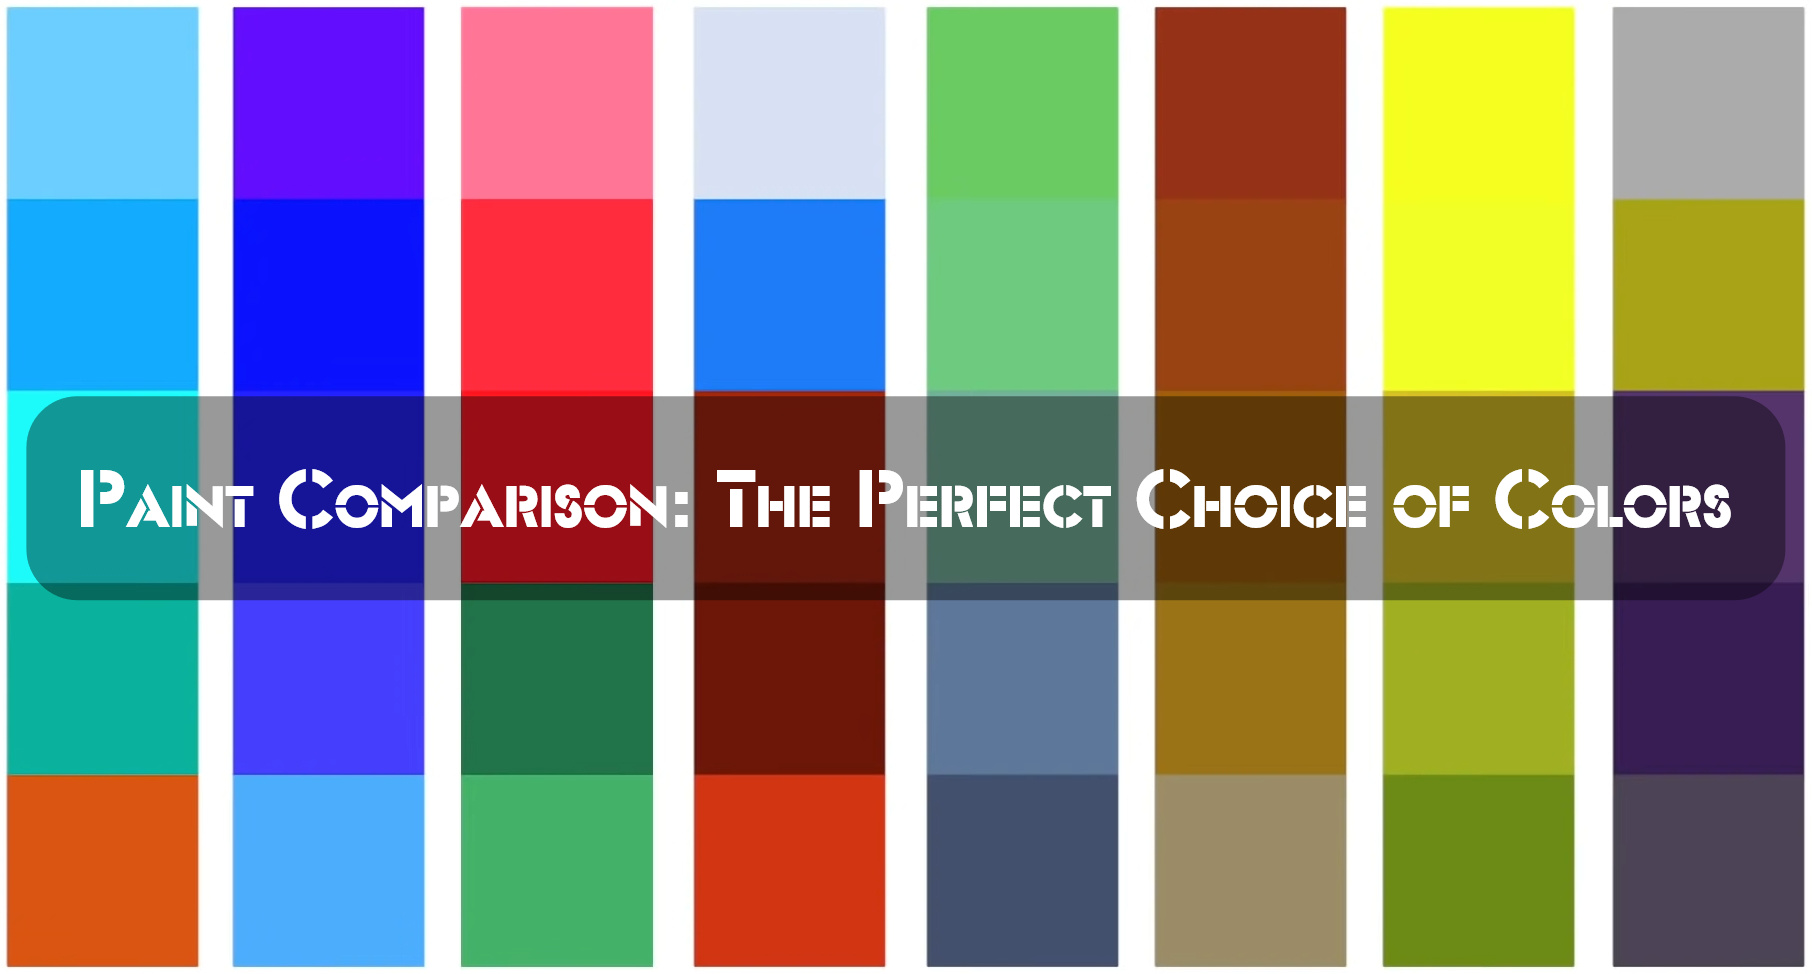 Paint Comparison: The Perfect Choice of Colors